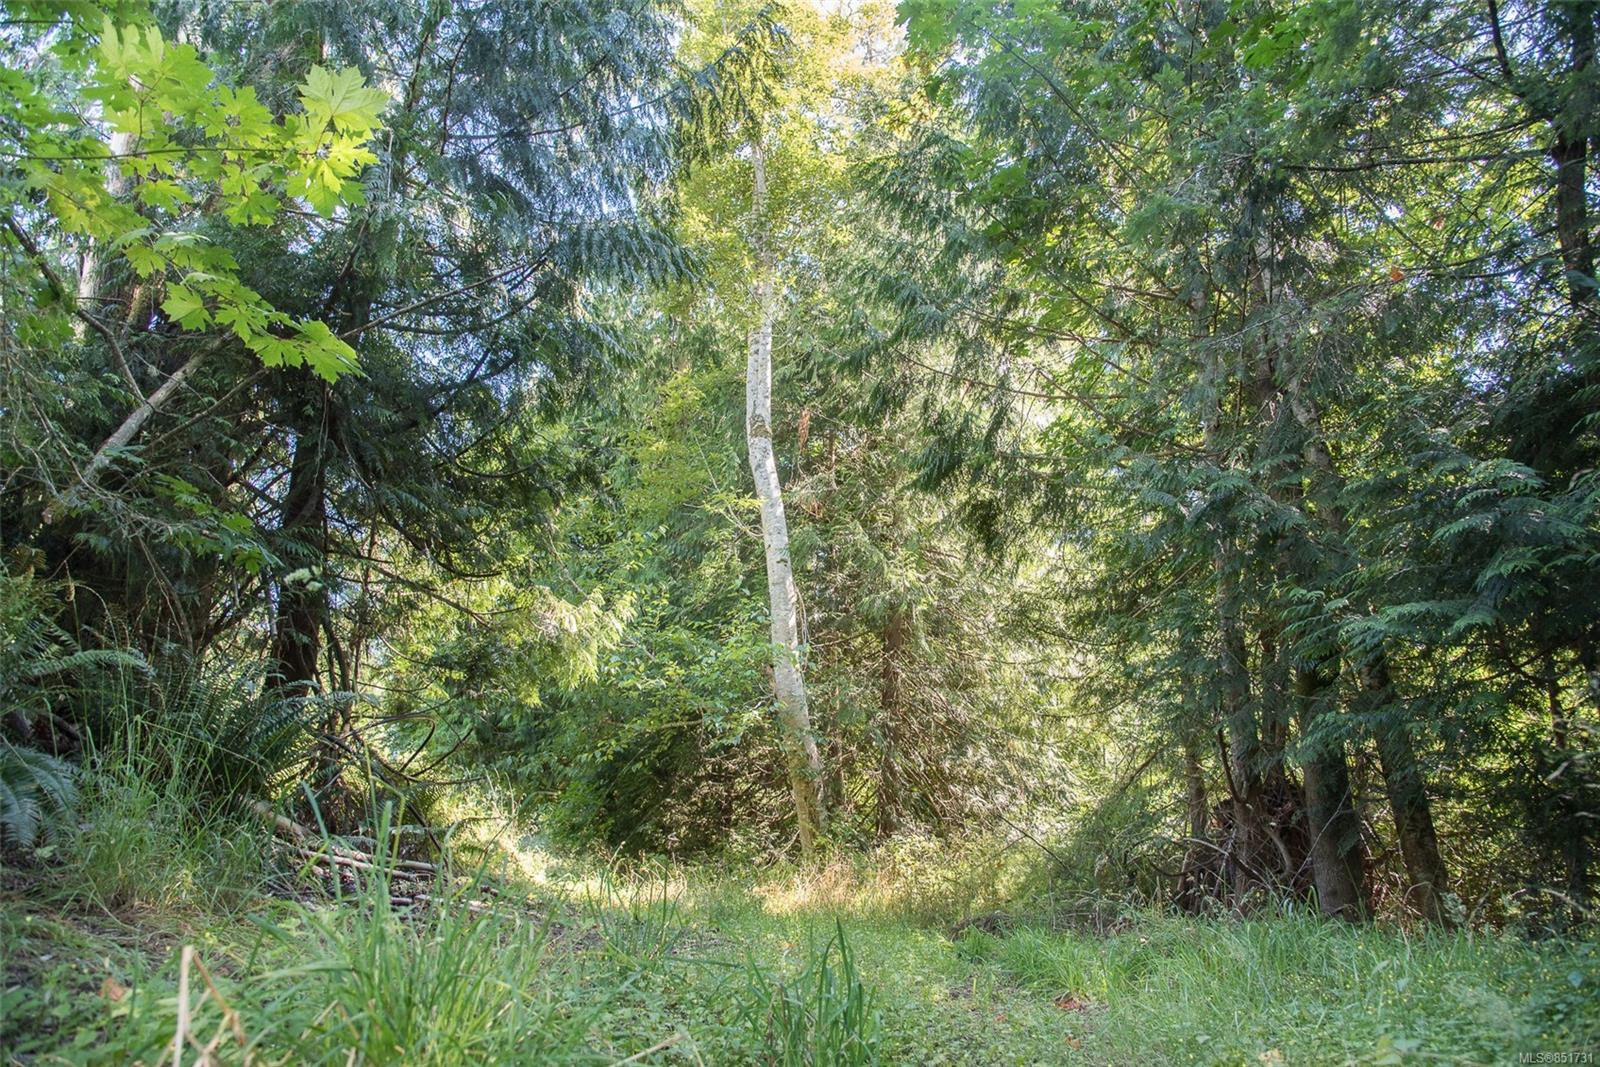 Main Photo: 31-185 Grantville St in : GI Salt Spring Land for sale (Gulf Islands)  : MLS®# 851731